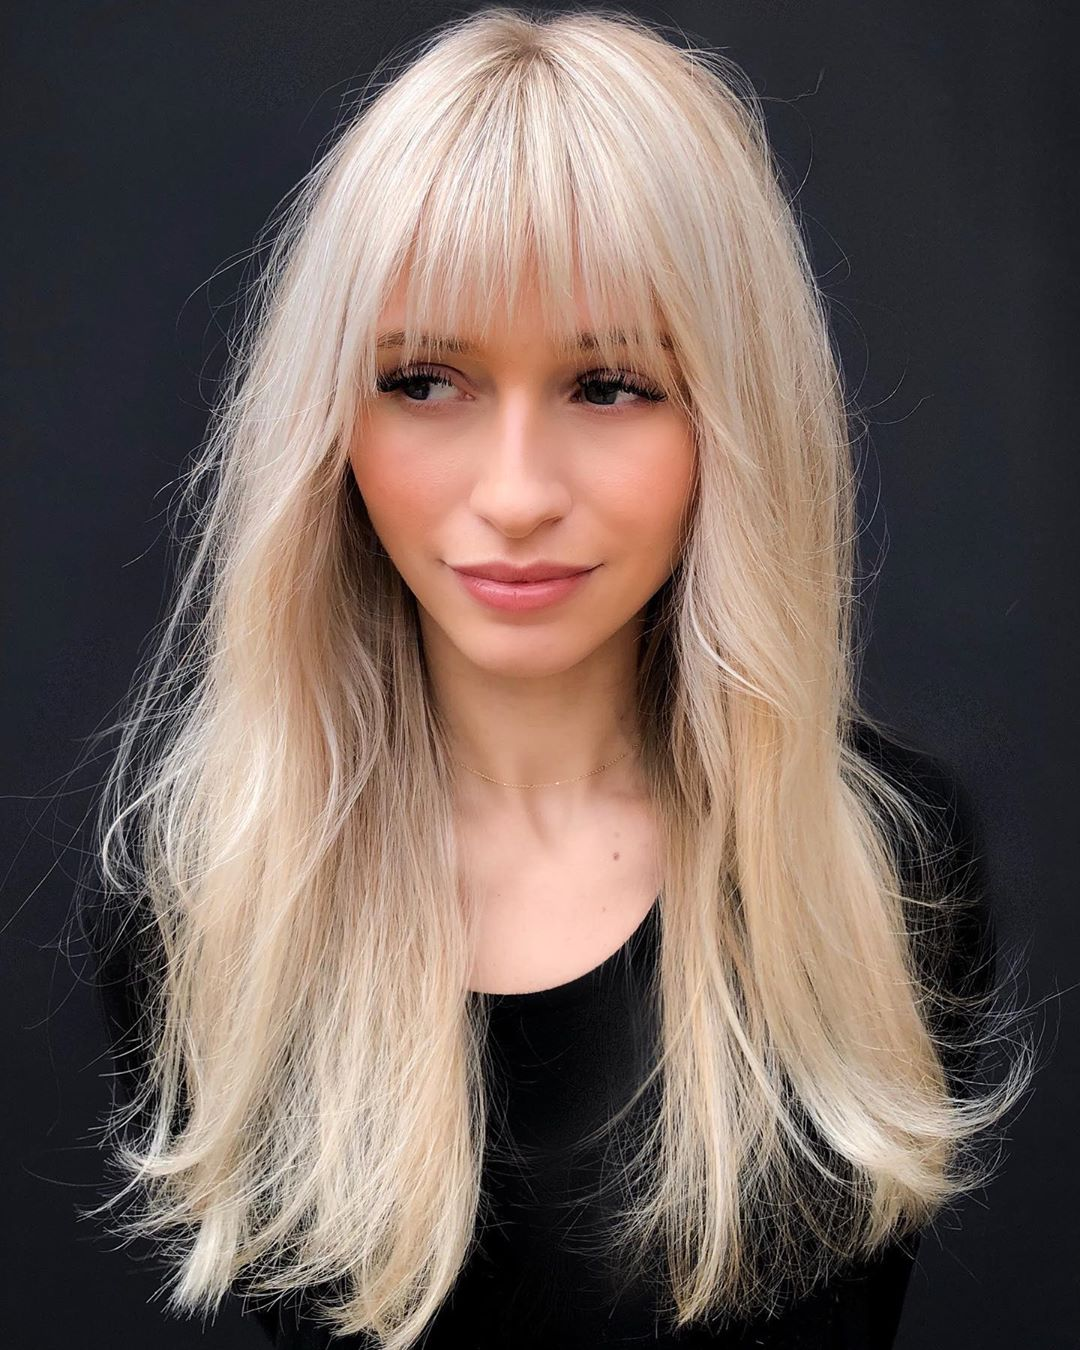 Long Blonde Hair with Thin Bangs